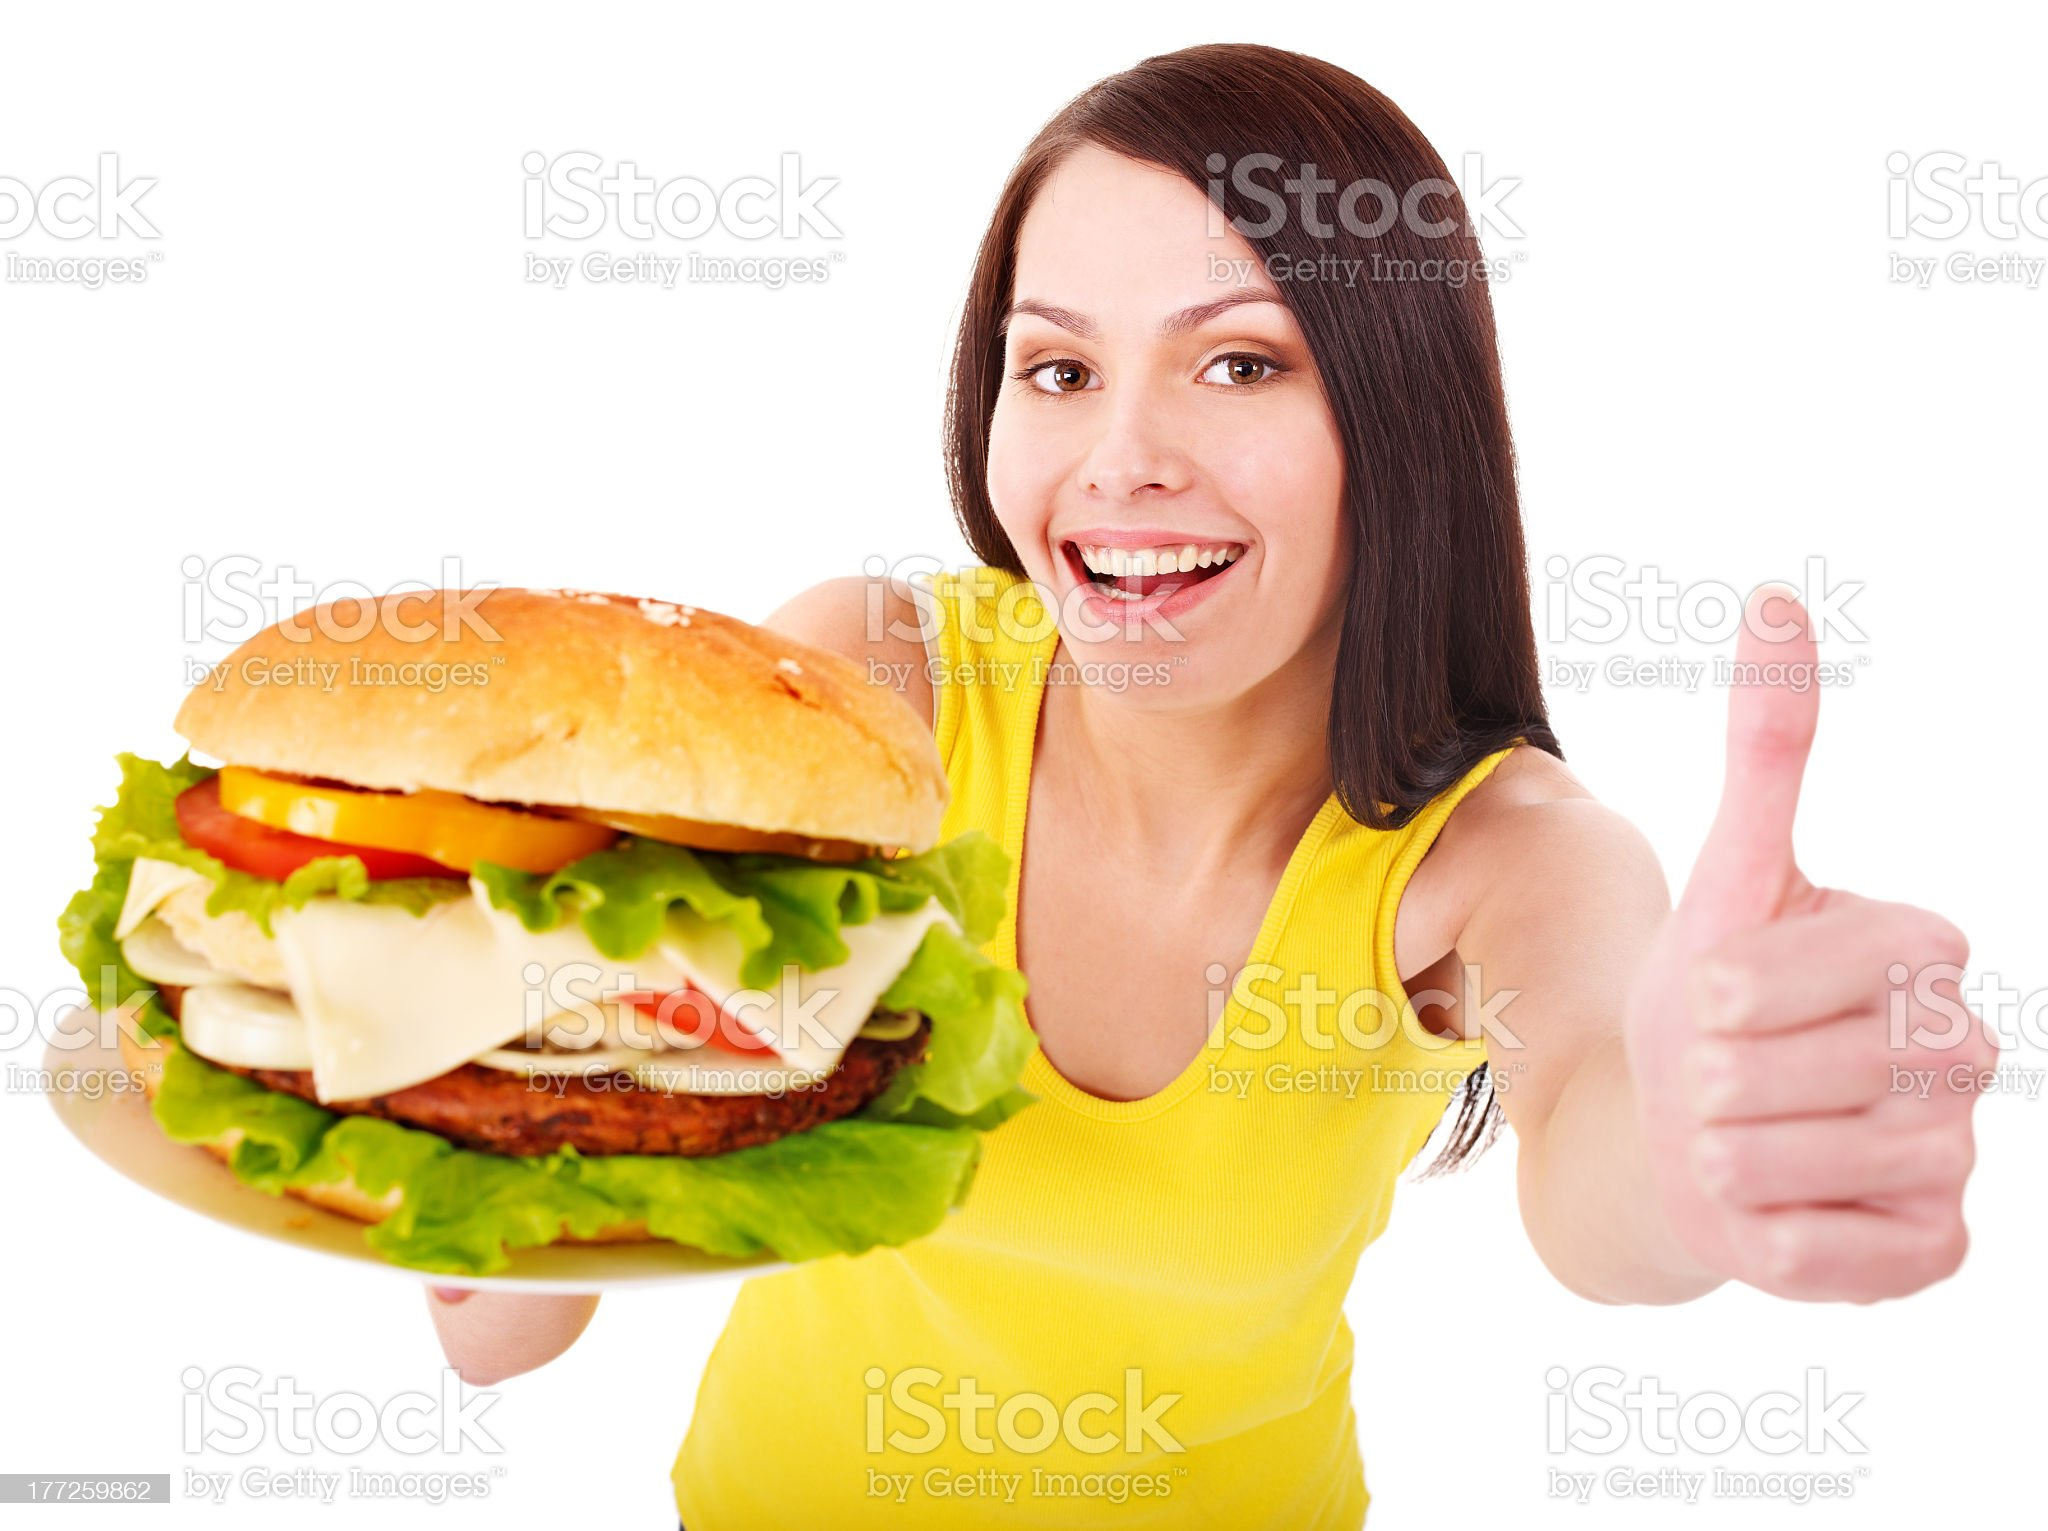 Woman holding a cheeseburger with veggies giving thumbs up royalty-free stock photo